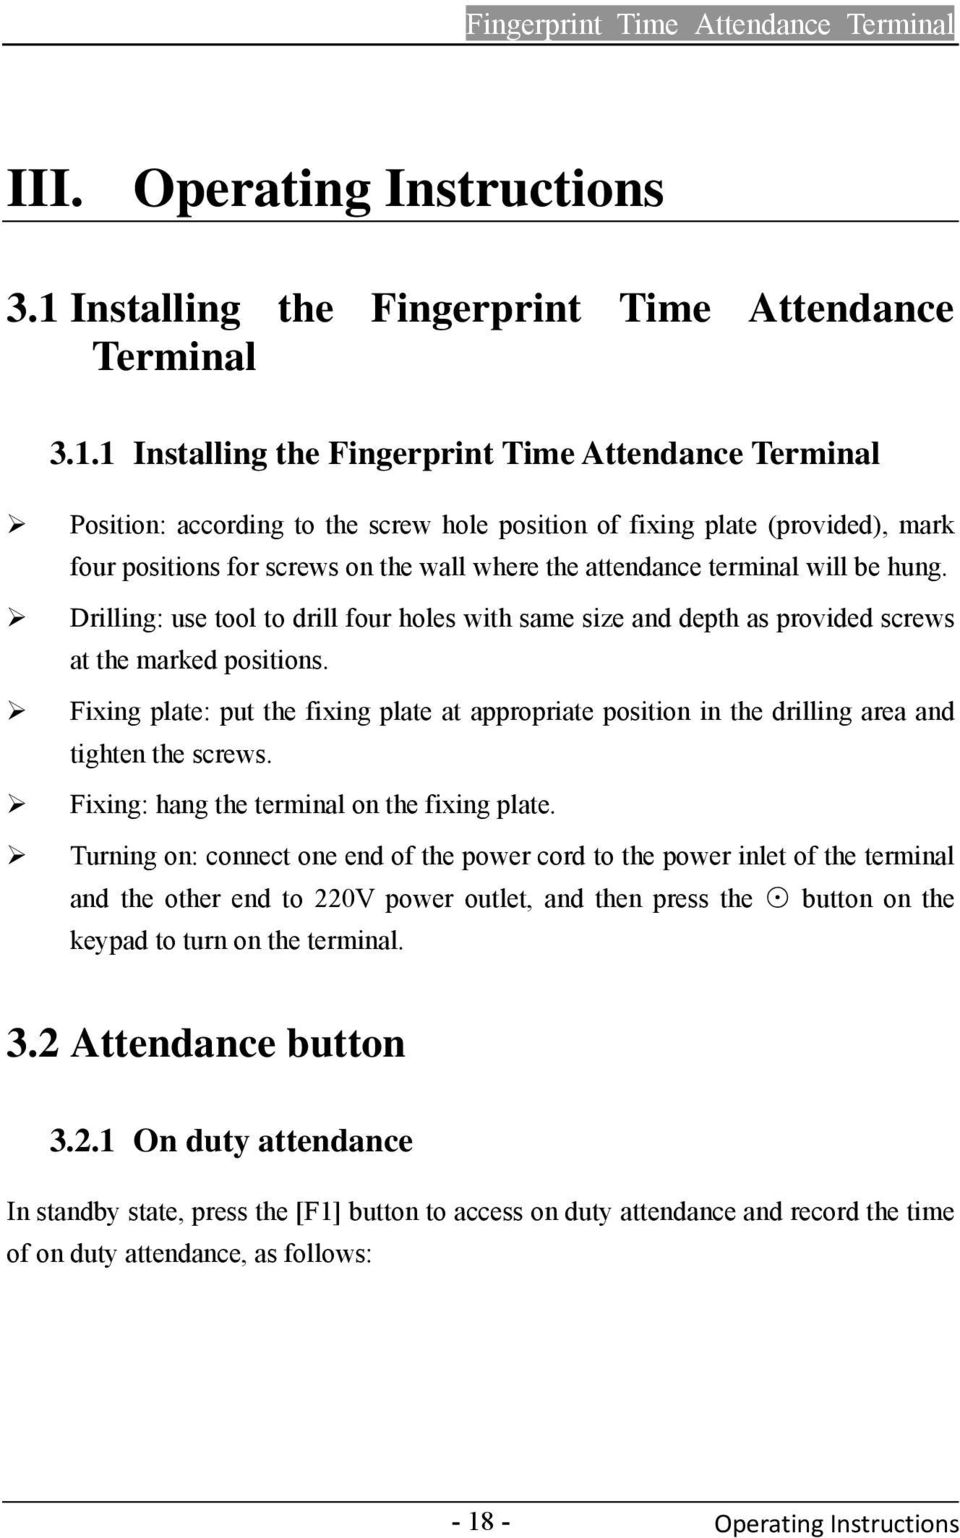 1 Installing the Fingerprint Time Attendance Terminal Position: according to the screw hole position of fixing plate (provided), mark four positions for screws on the wall where the attendance